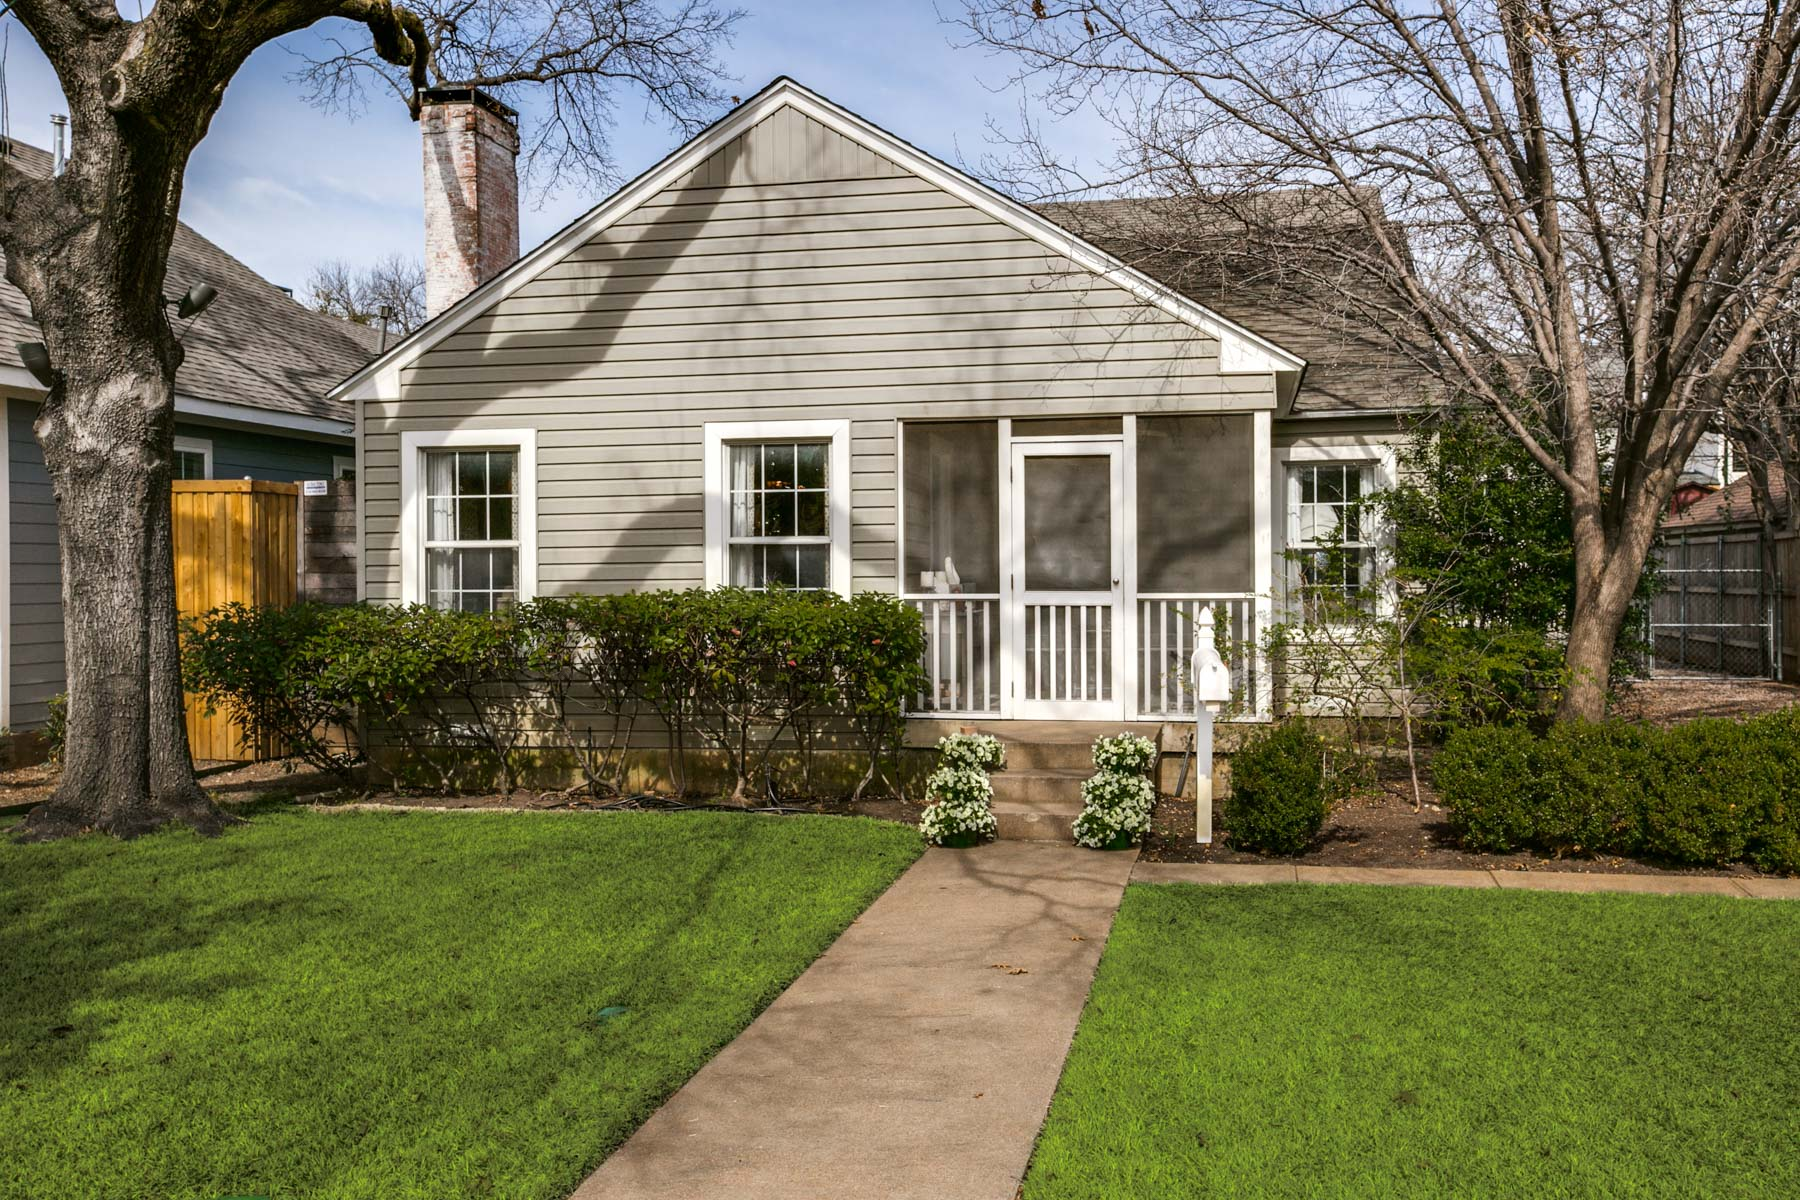 Maison unifamiliale pour l Vente à Exceptional Briarwood Cottage 5011 Stanford Ave Dallas, Texas, 75209 États-Unis